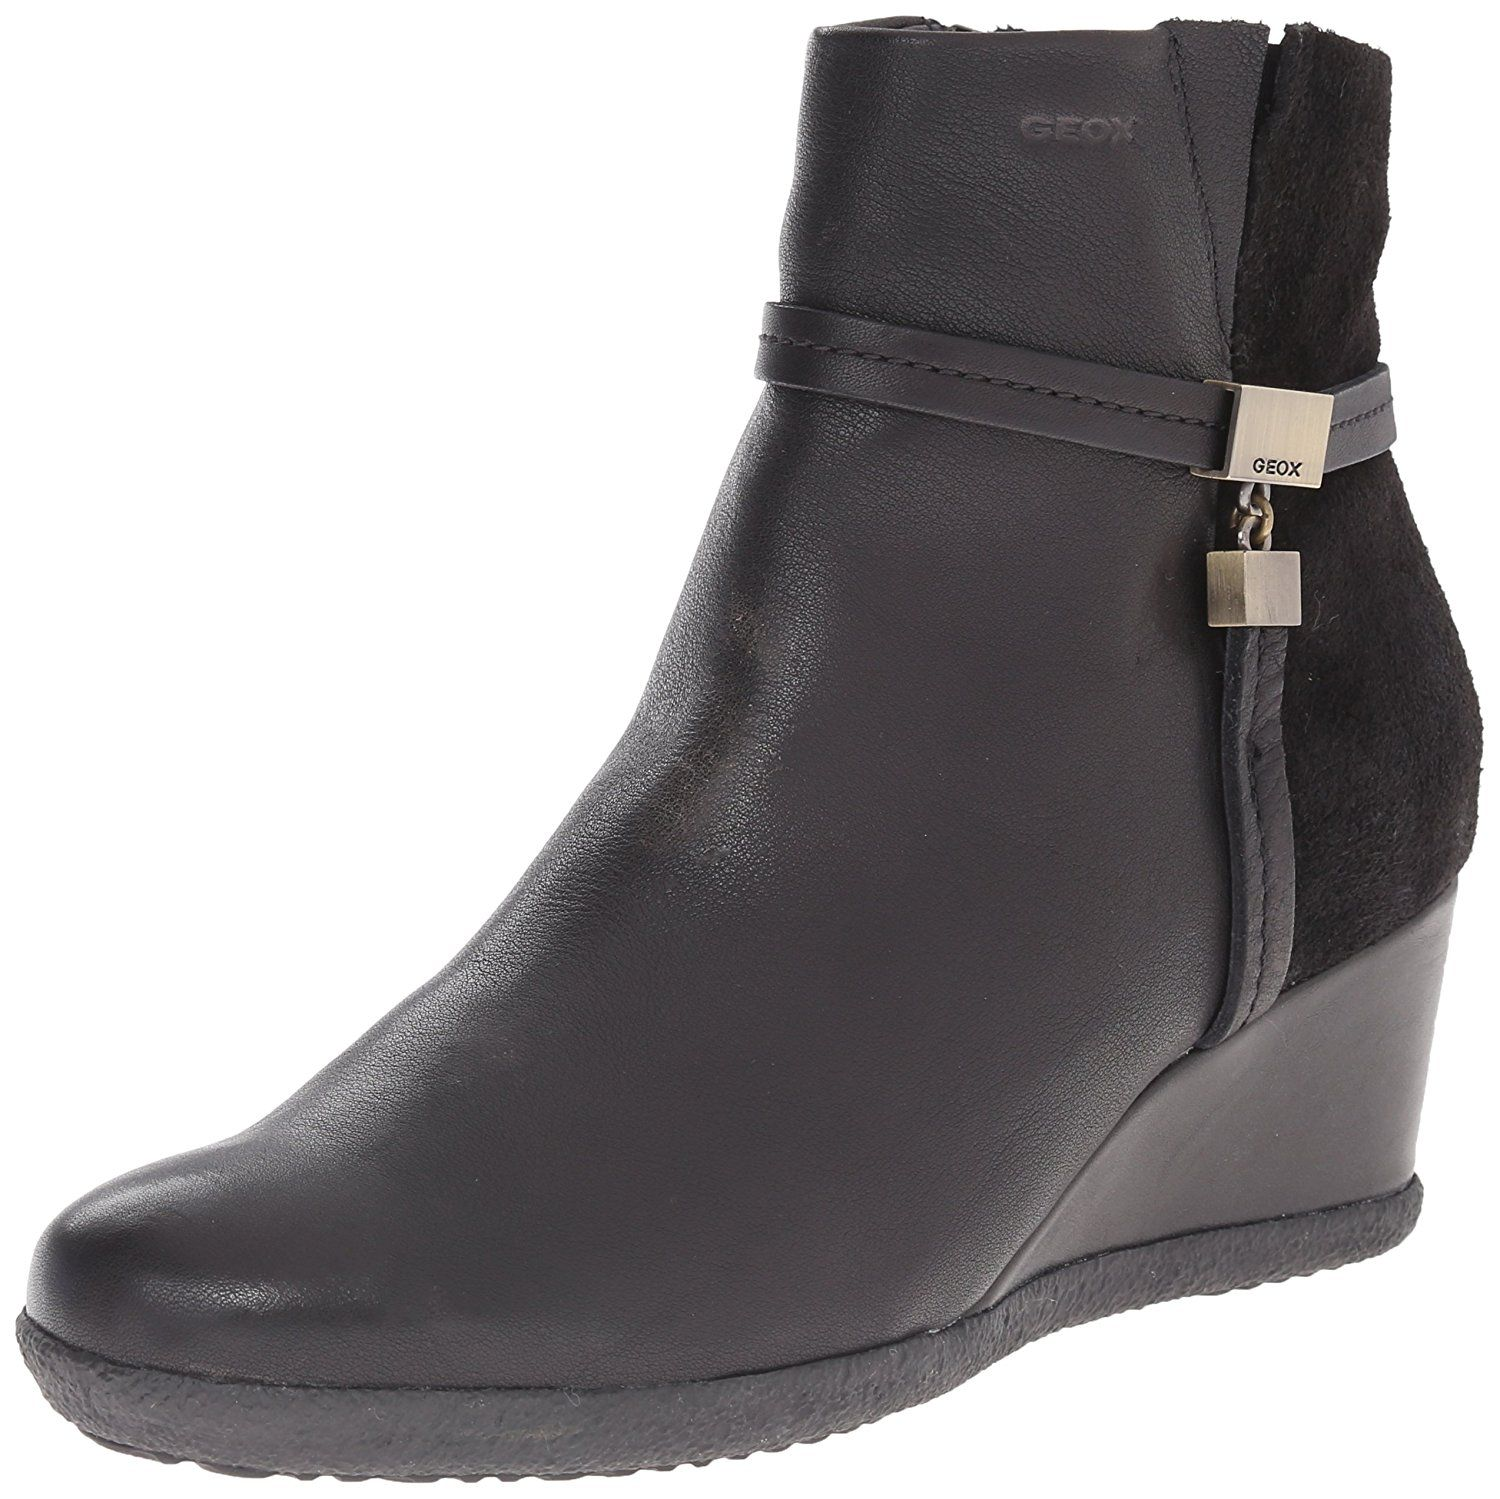 b70415bd32d Geox Women's Amelia Stivali Boot ** Insider's special review you can't  miss. Read more : Women's booties